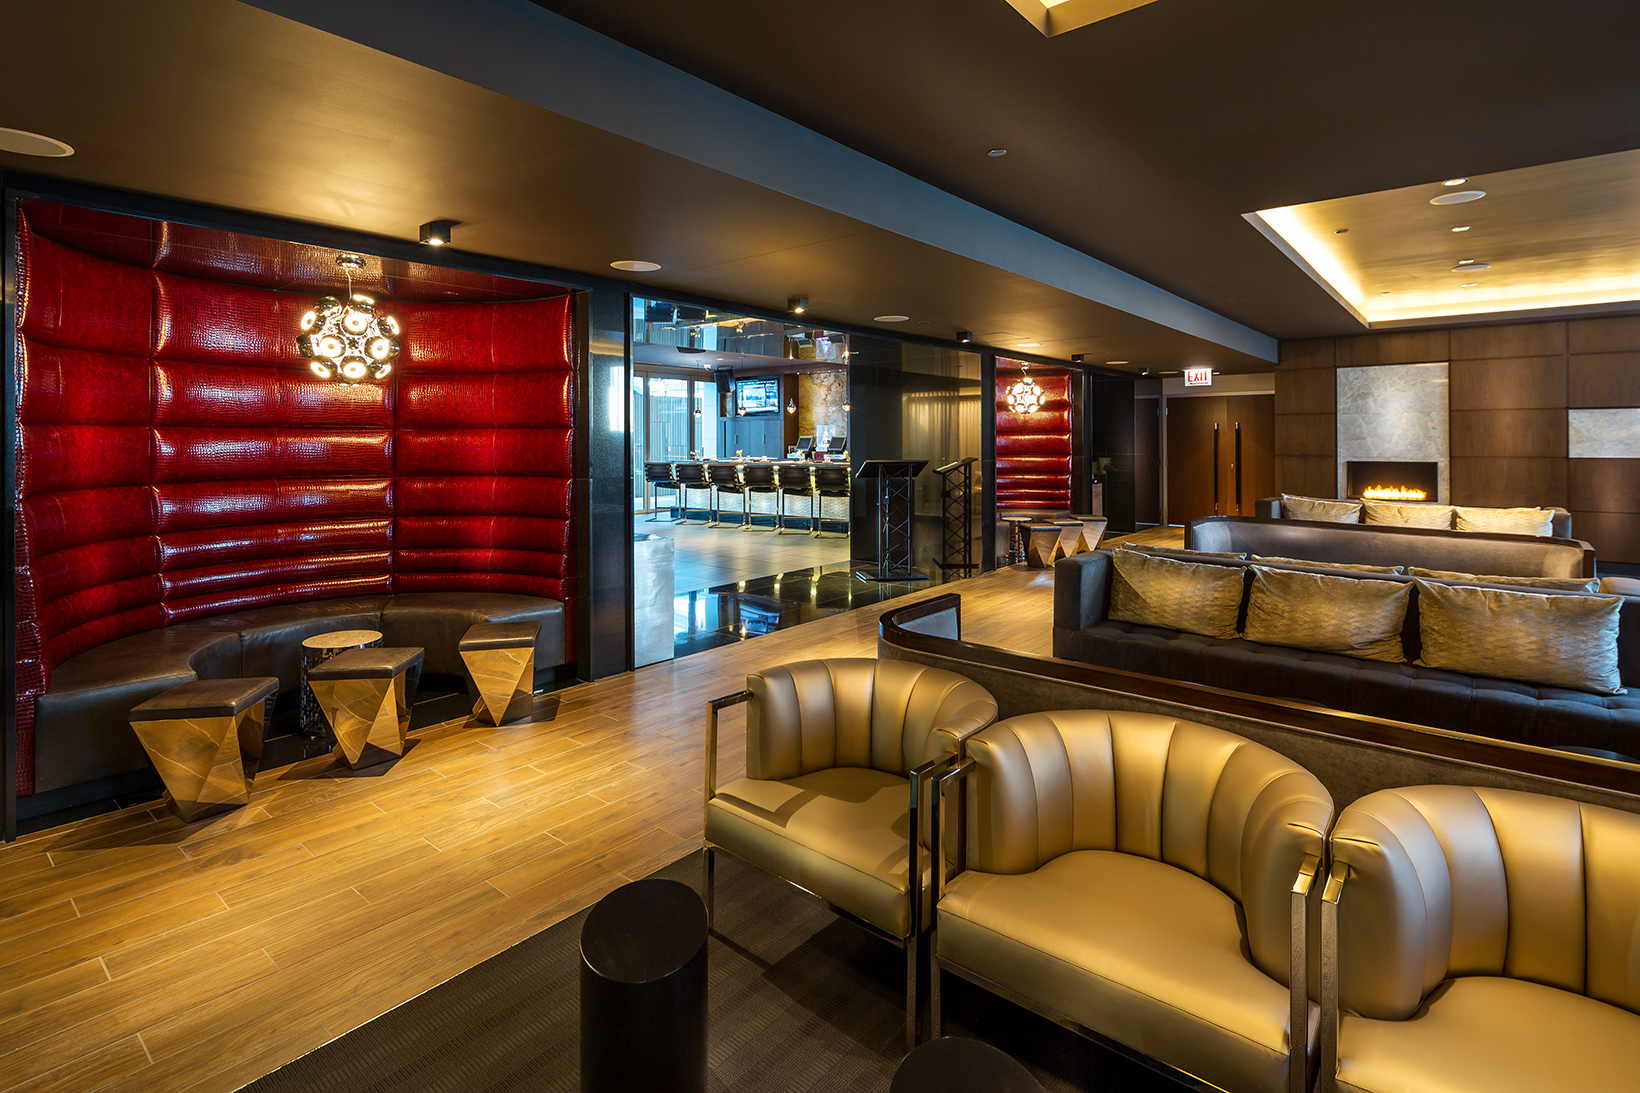 Godfrey|Hotel|Interior|Bar 101